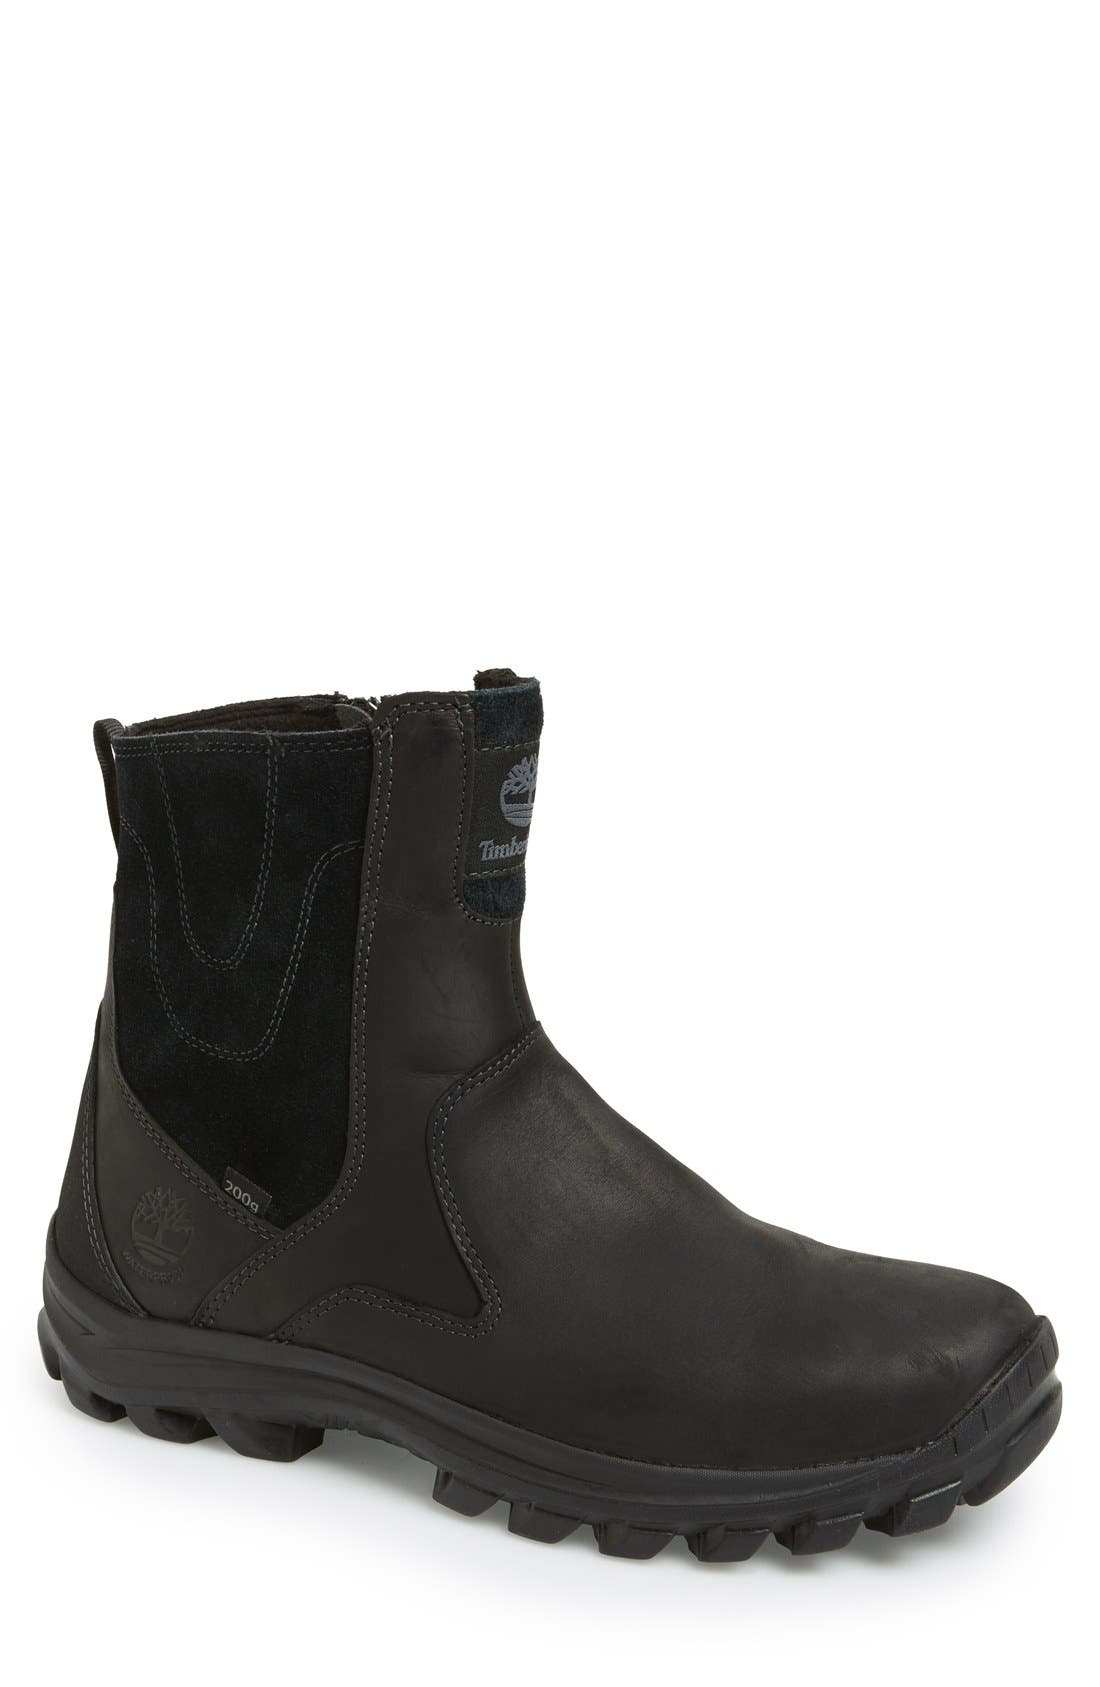 Alternate Image 1 Selected - Timberland 'Chillberg' Waterproof Boot (Men)